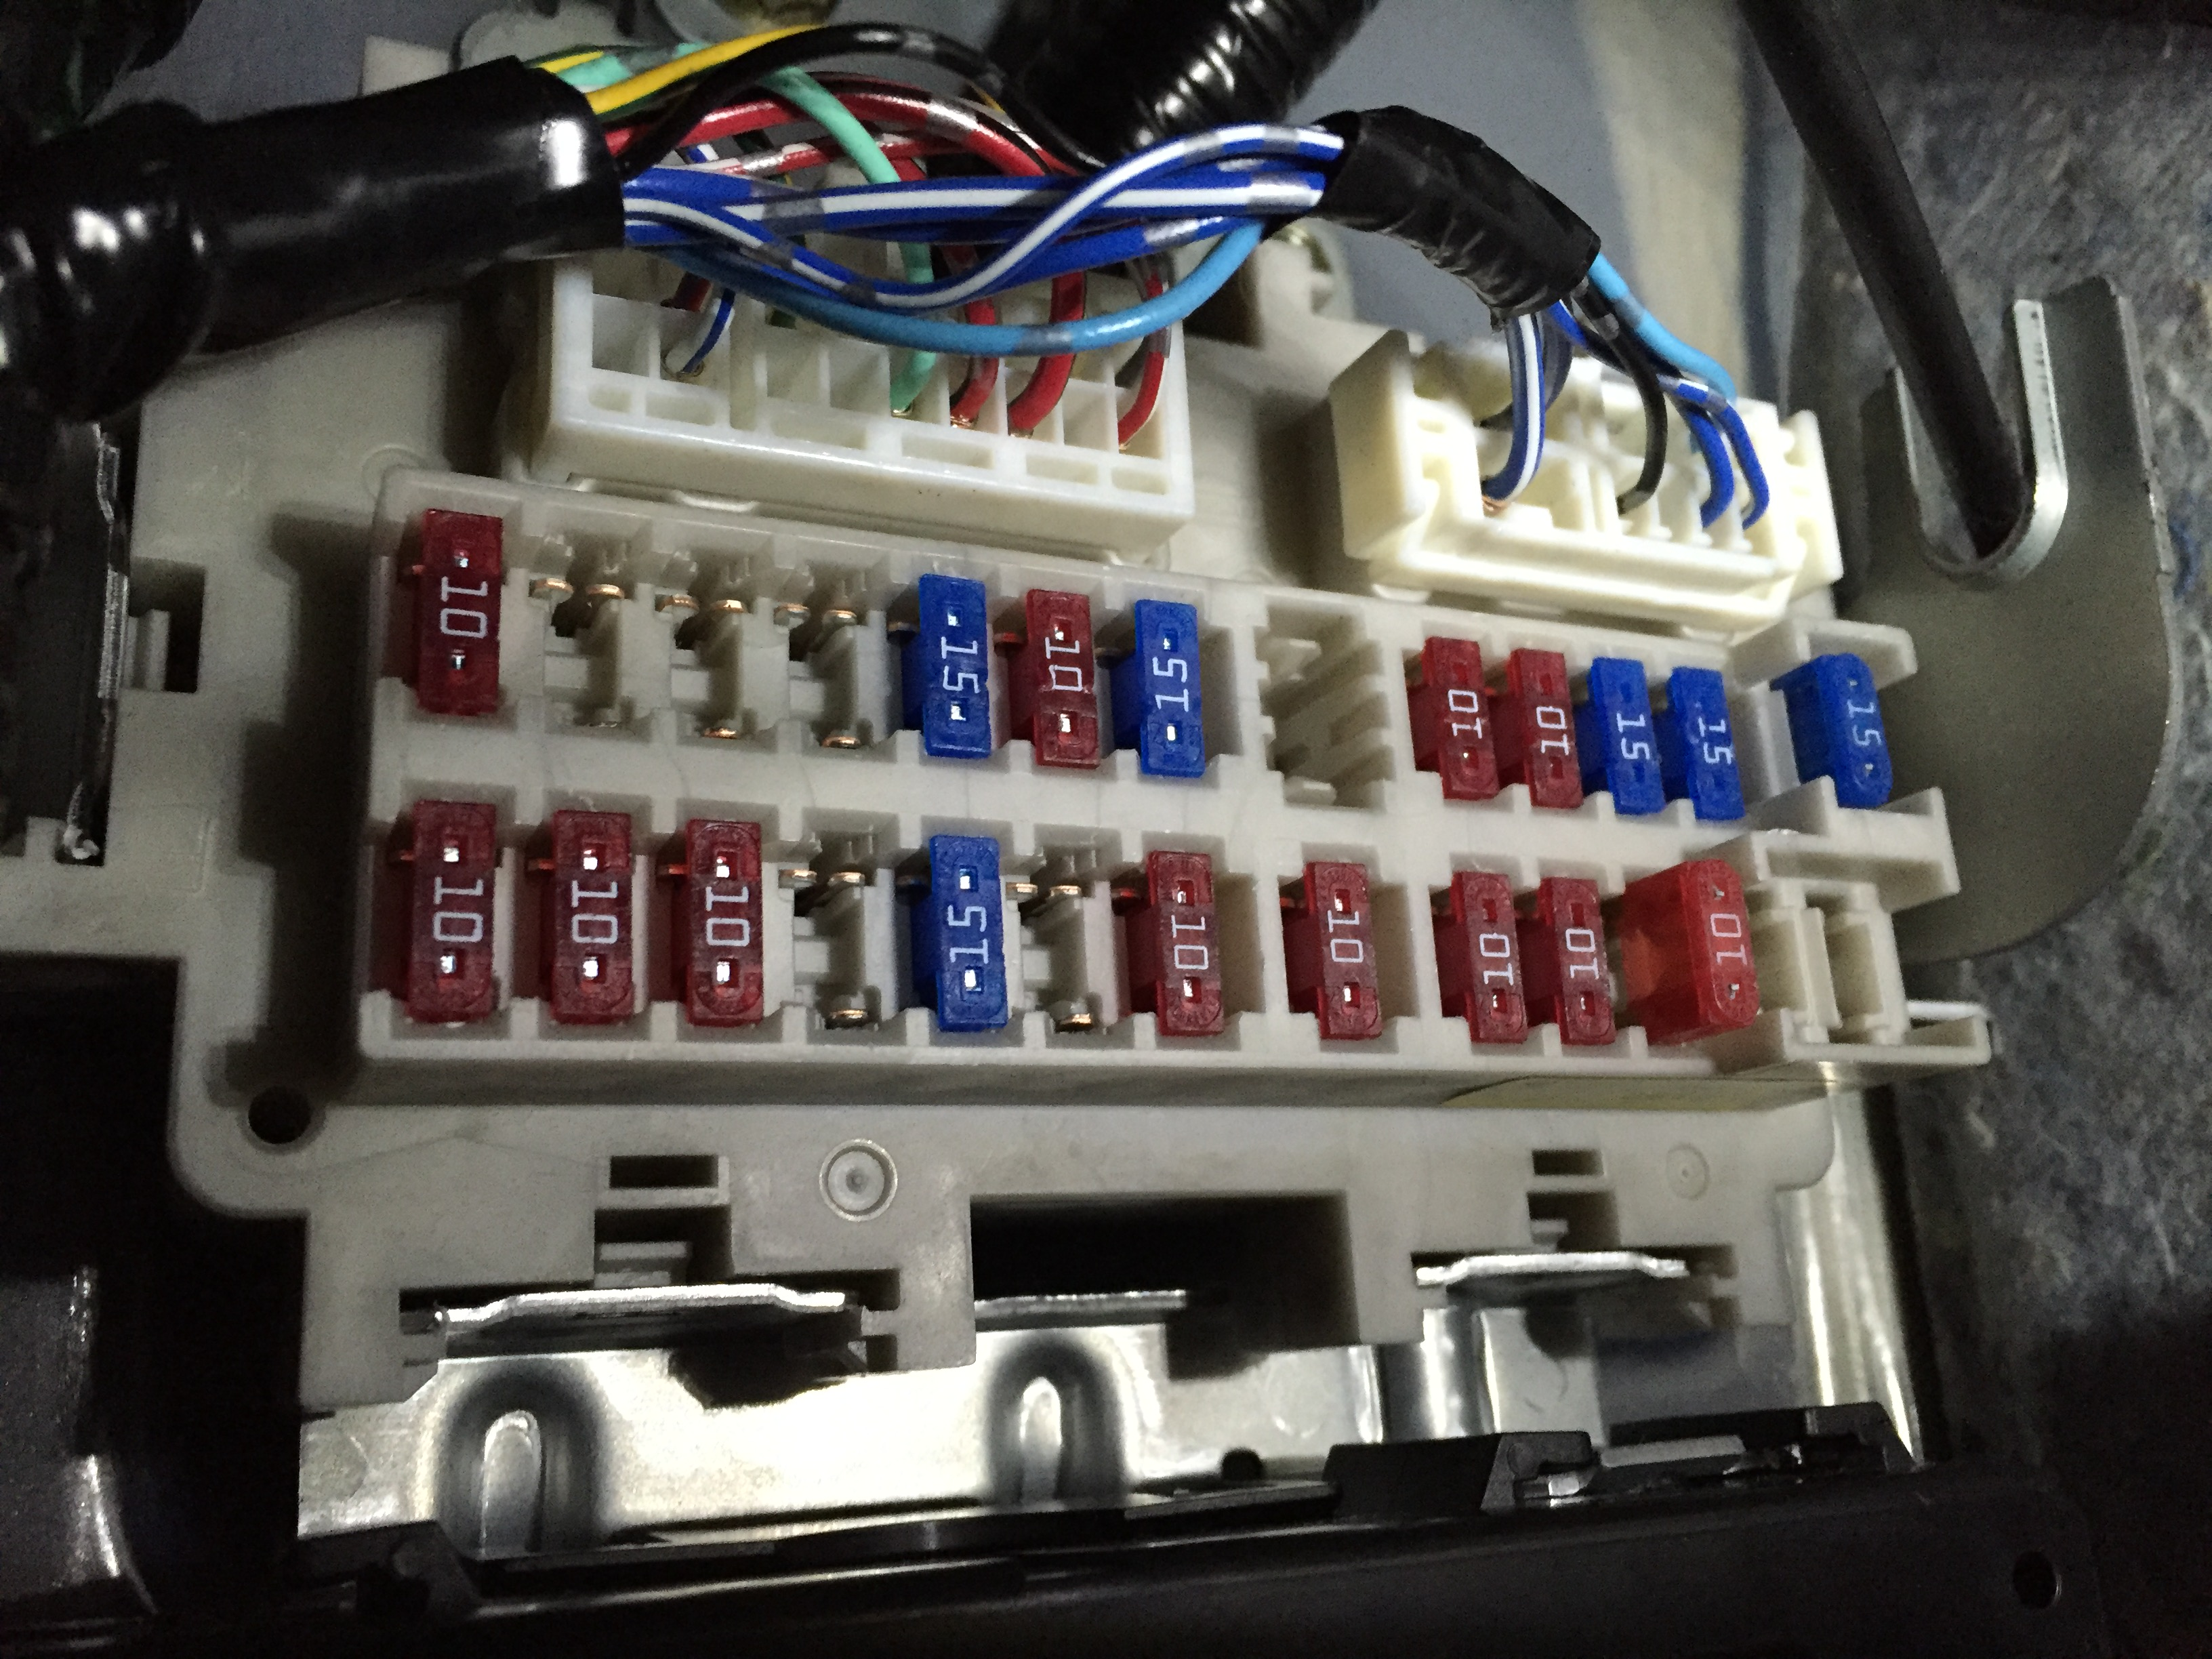 I Have A Infiniti G 35 Coupe Tried Installing Radio And Now Qx60 Fuse Box Imagejpeg